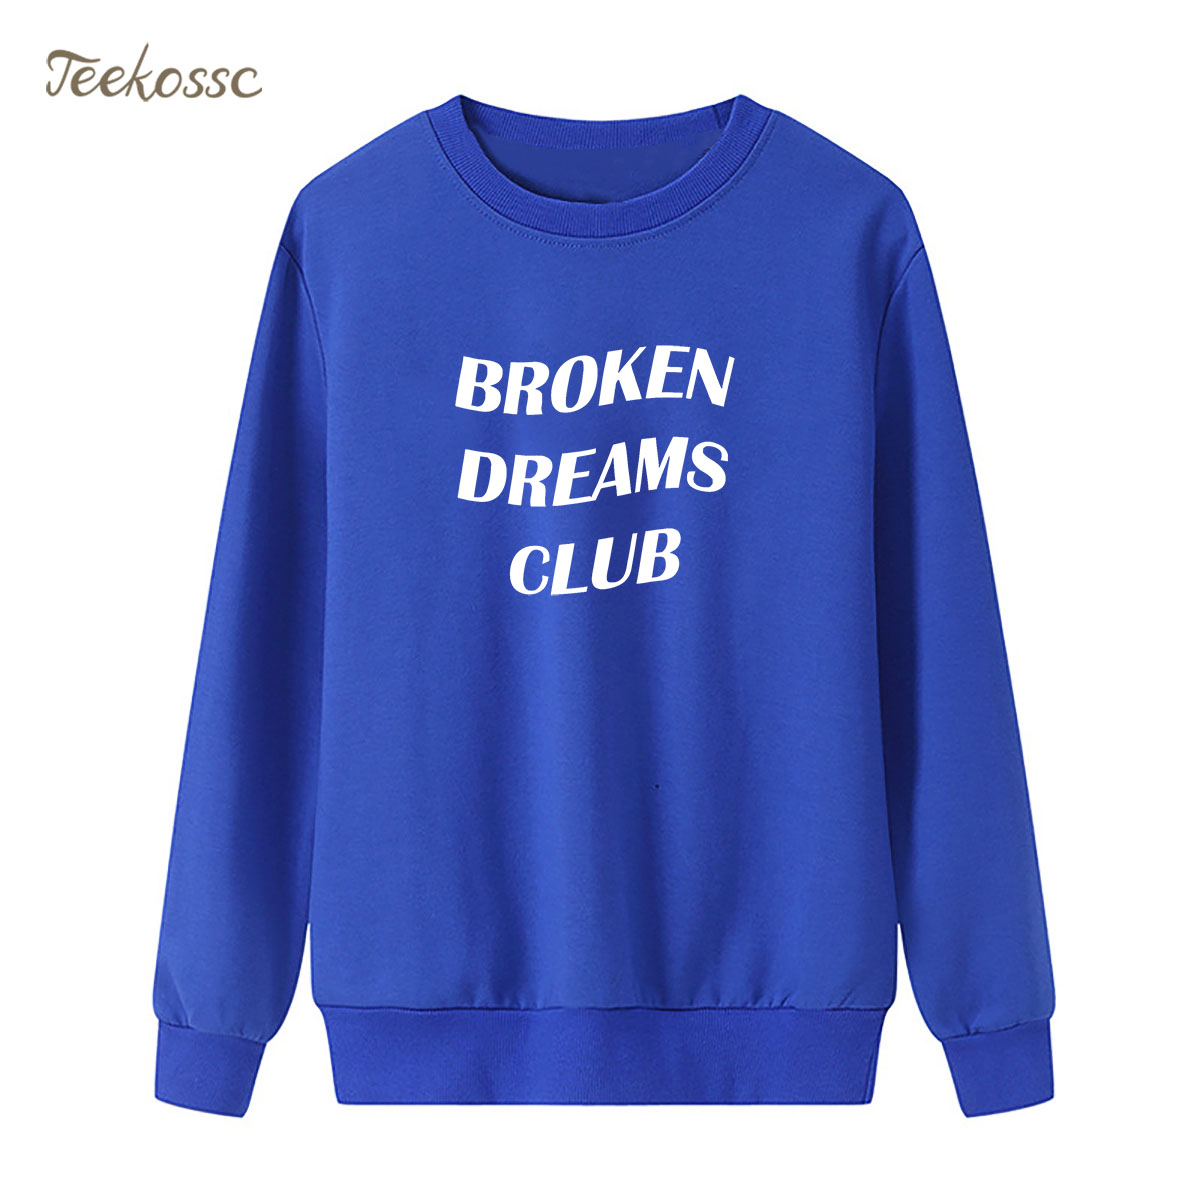 Broken Dreams Club Sweatshirt Music Hoodie 2018 Brand Winter Autumn Women Lady Pullover Fleece Loose Kpop Punk Rock Streetwear